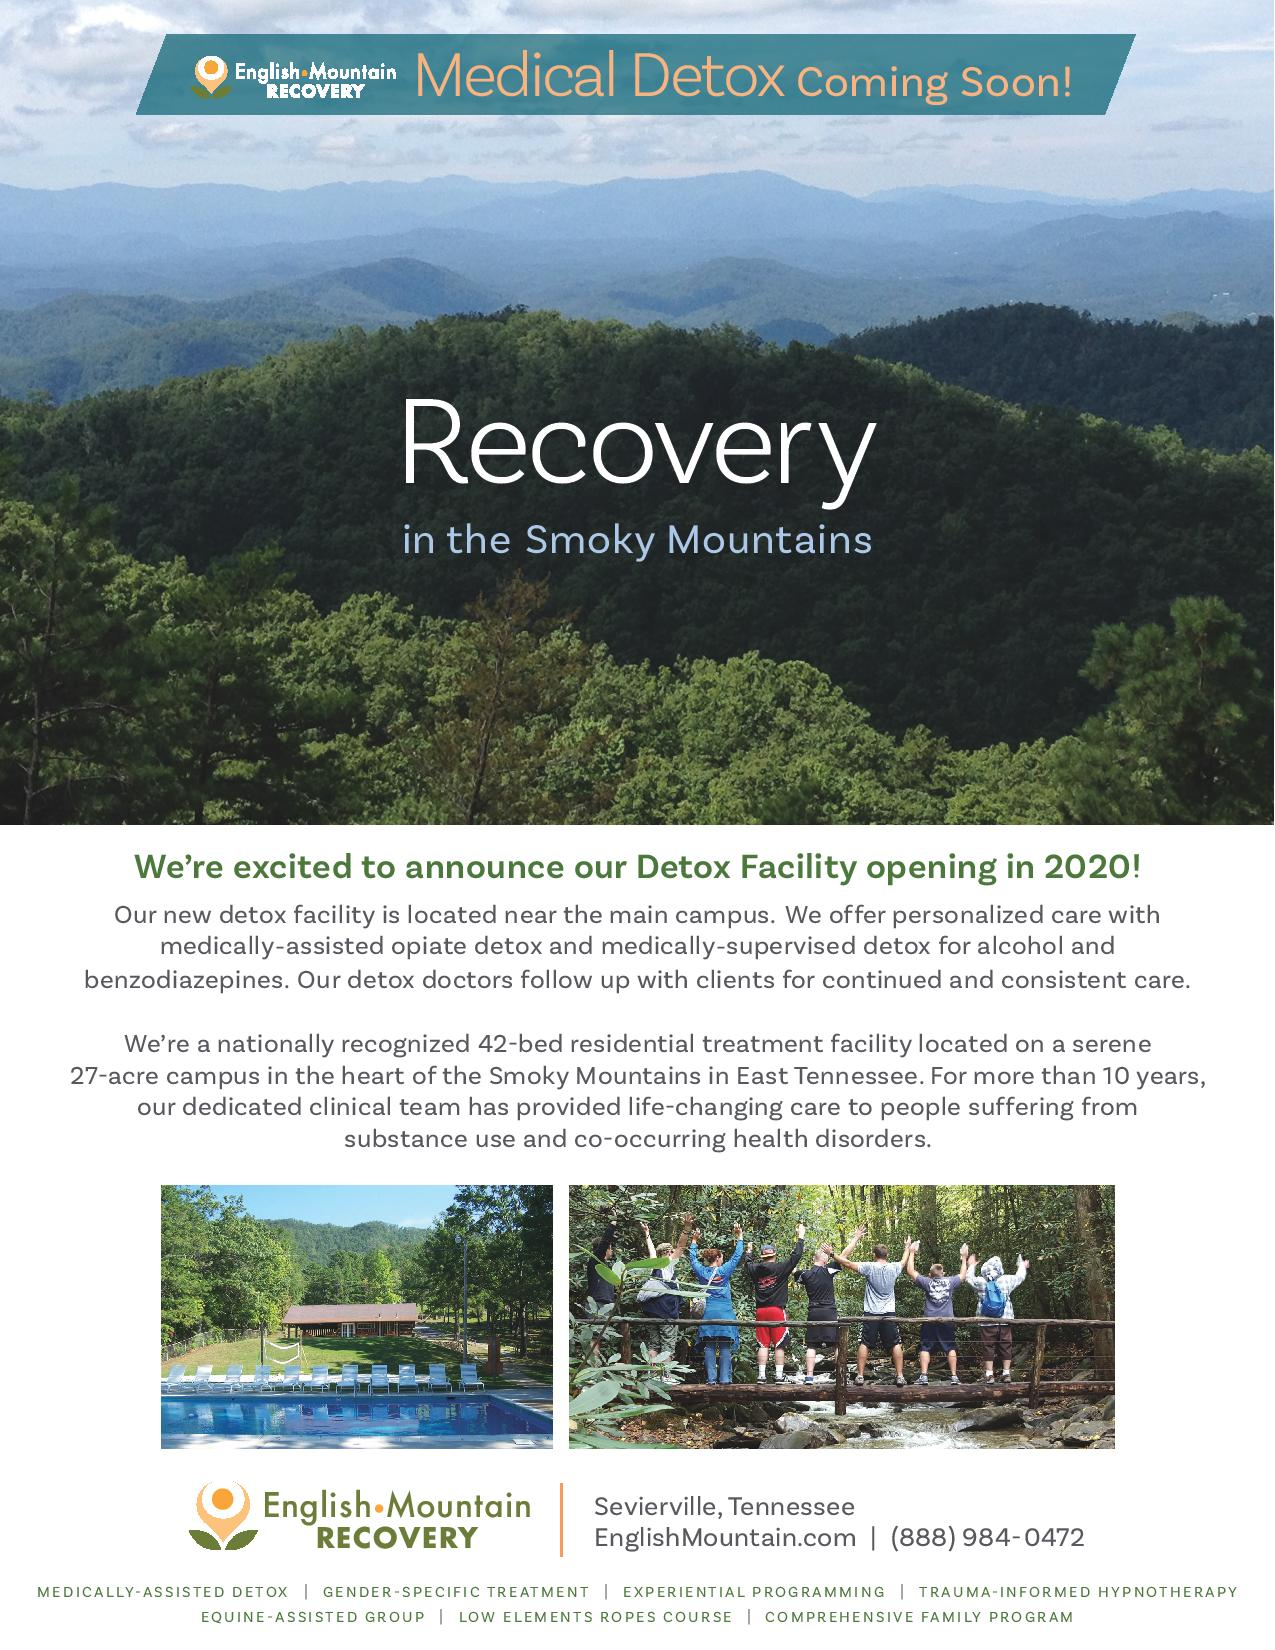 English Mountain Recovery - alcohol and drug detox - medically assisted opiate detox - medically supervised alcohol detox - Tennessee drug alcohol detox